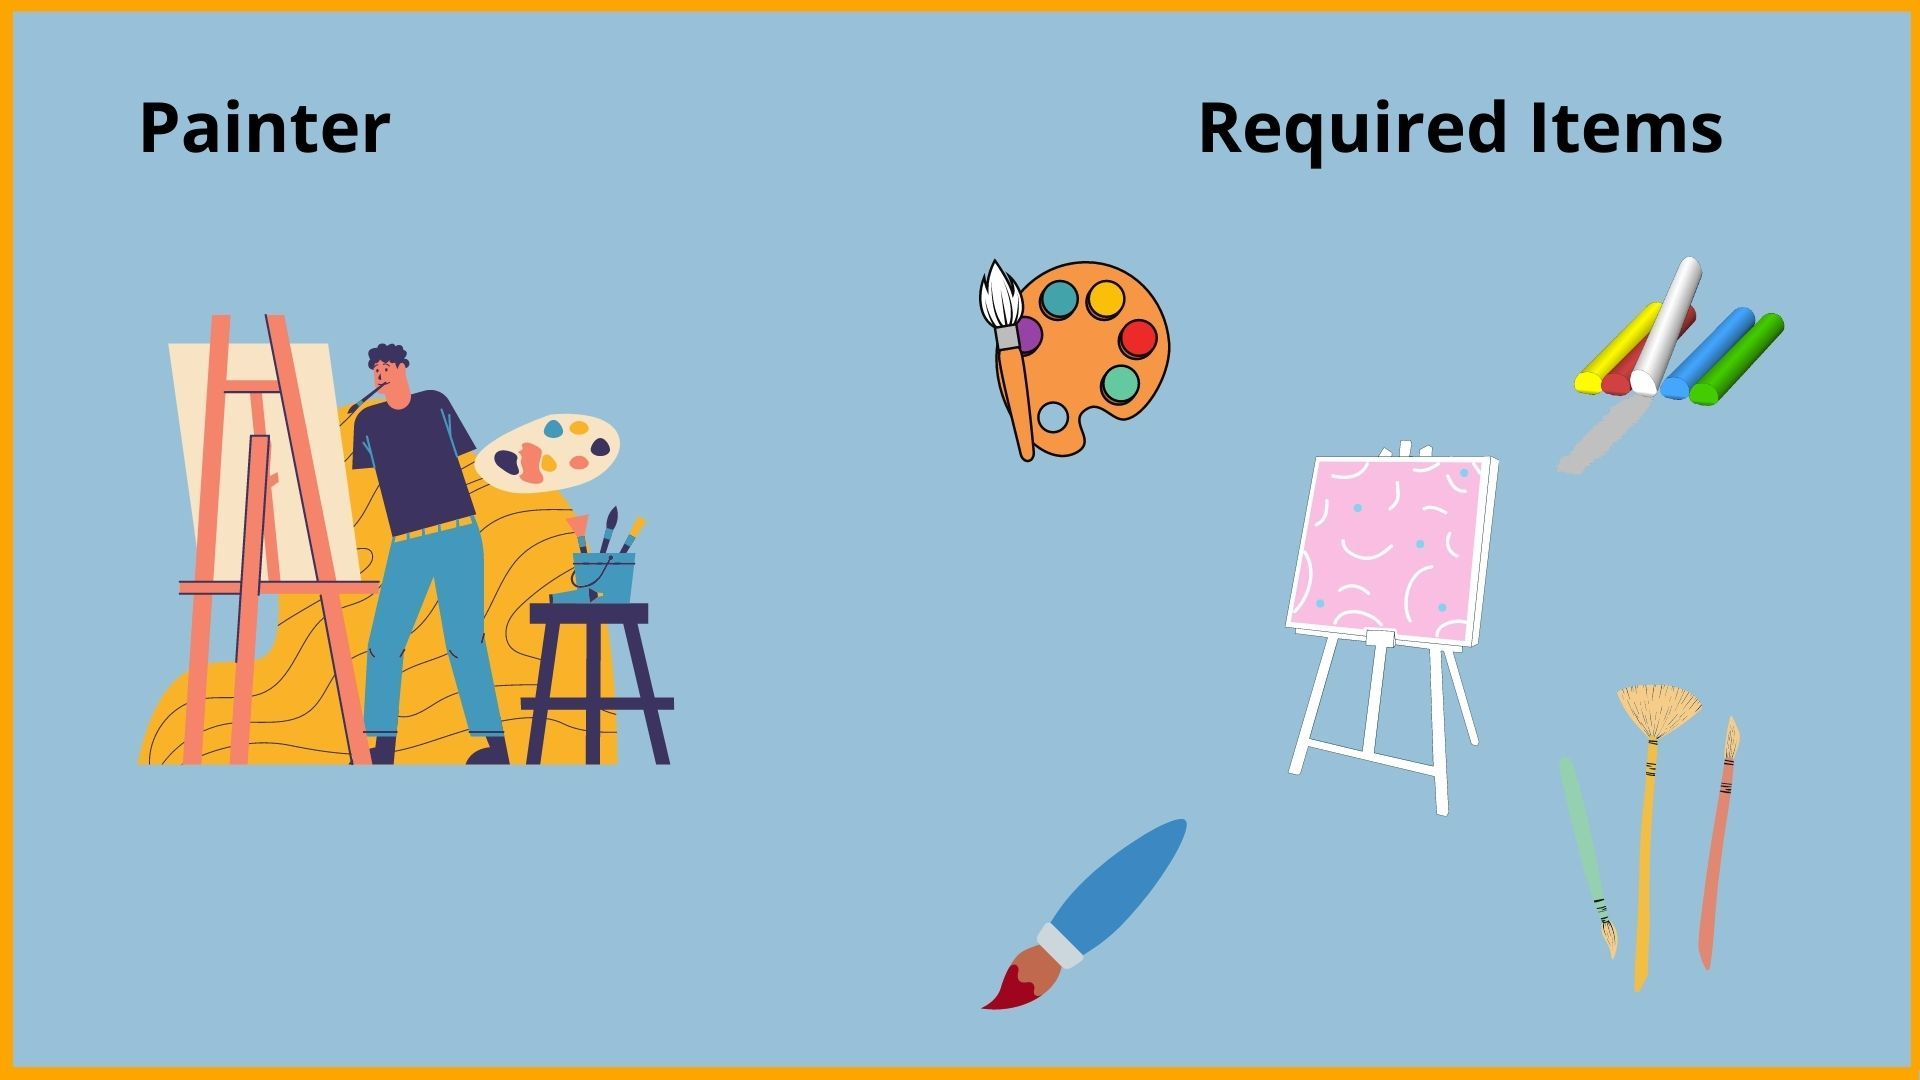 Painter and required items